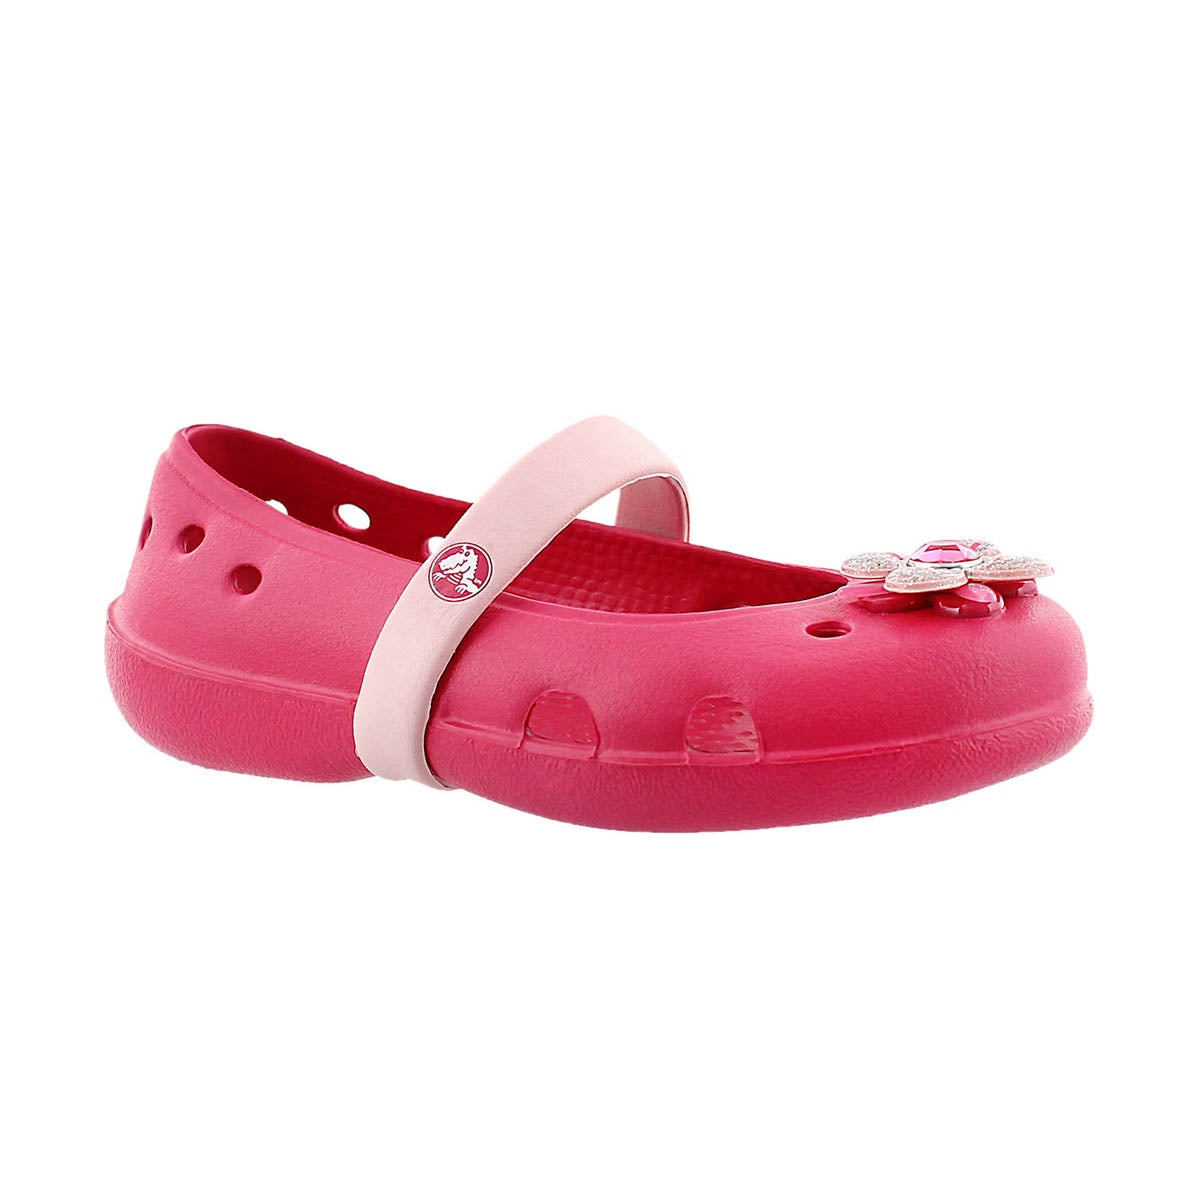 Girls' KEELEY SPRINGTIME raspberry Mary Jane flats